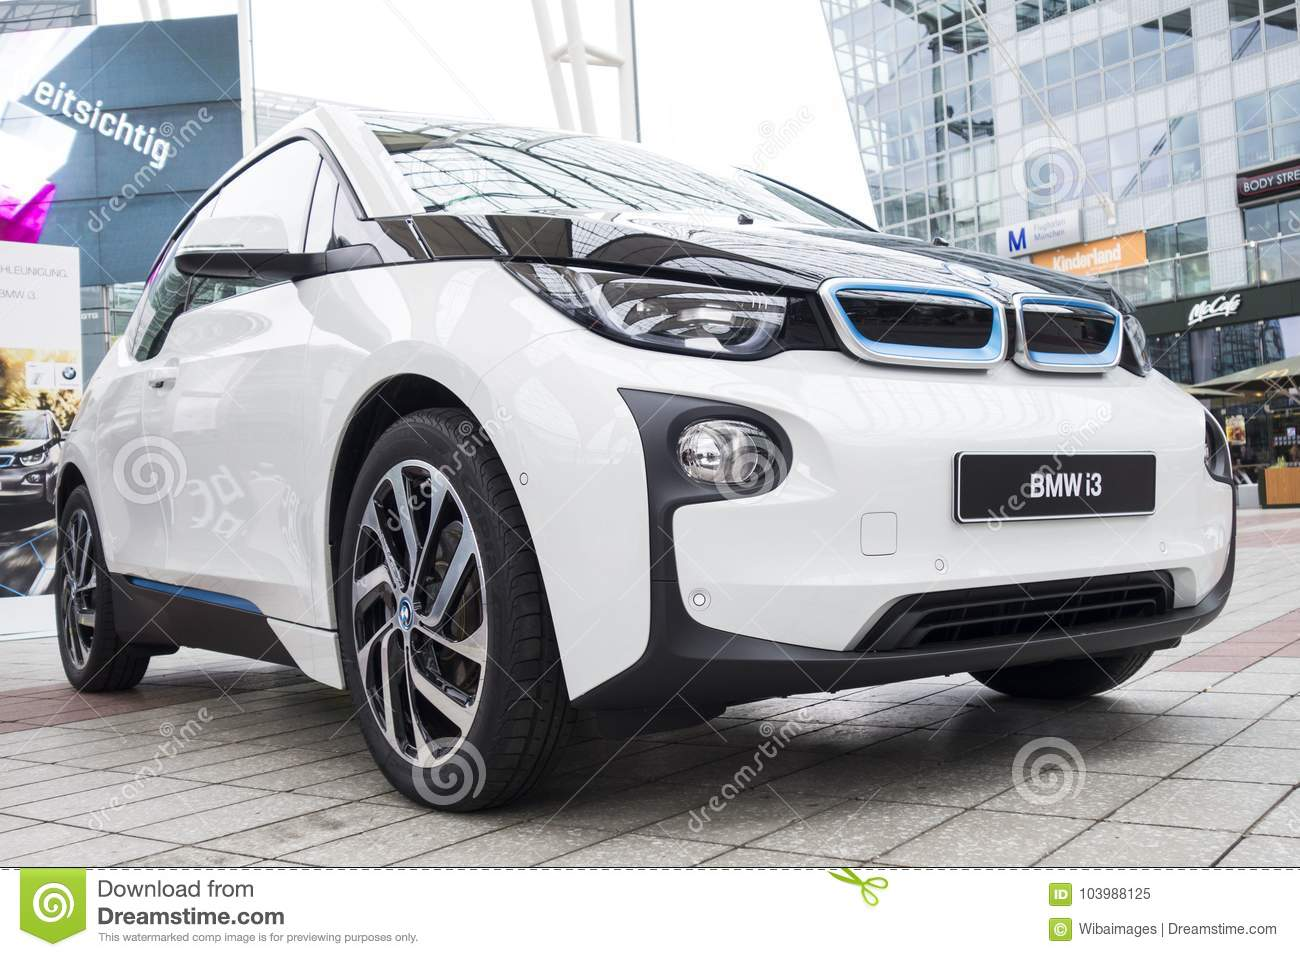 Bmw I3 All Electric Car Editorial Image Image Of Luxury 103988125